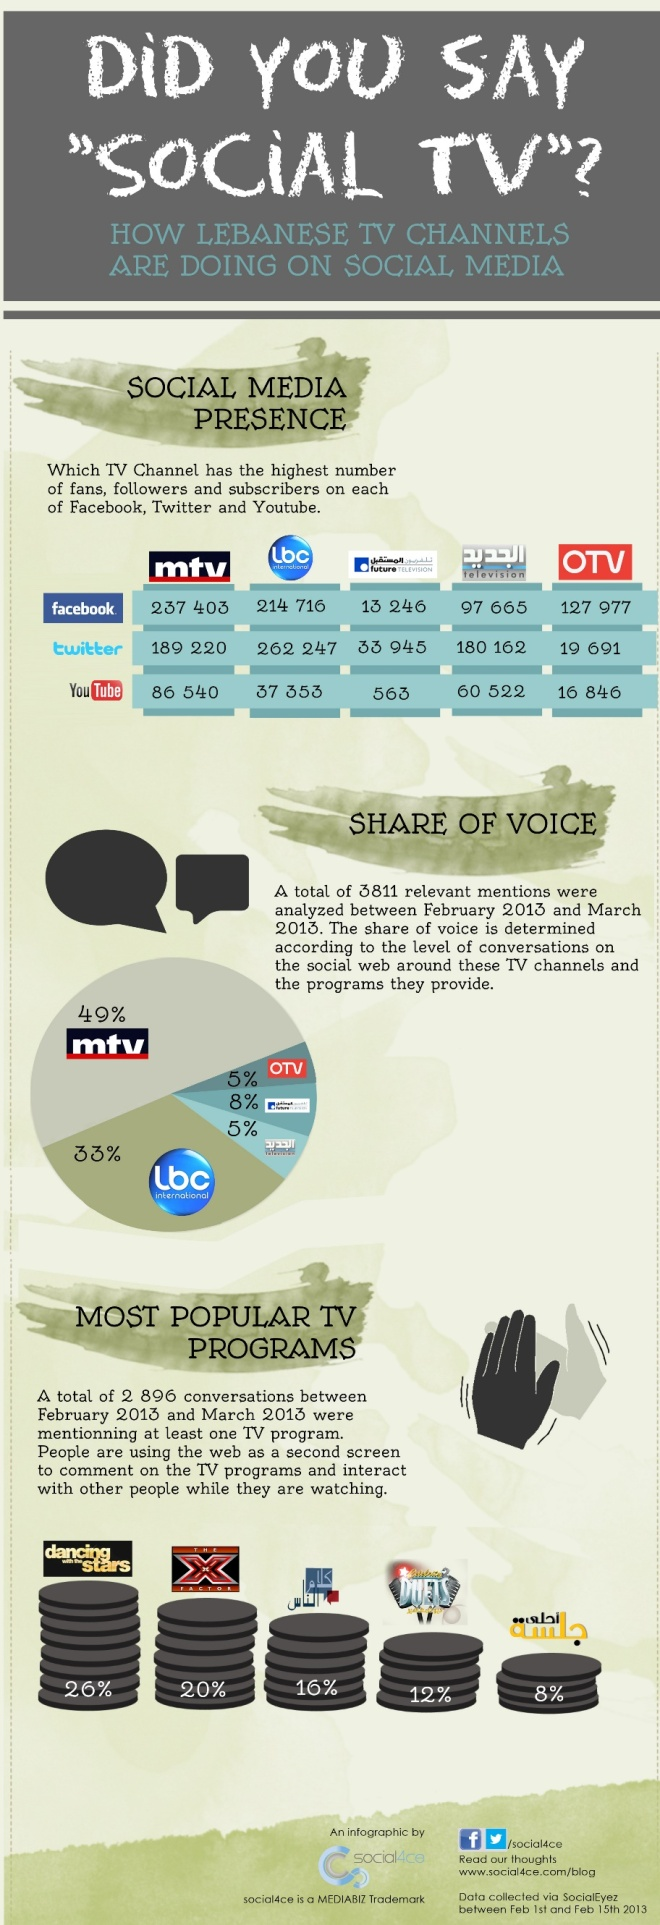 How Lebanese TV Channels Are Doing on Social Media Infographic